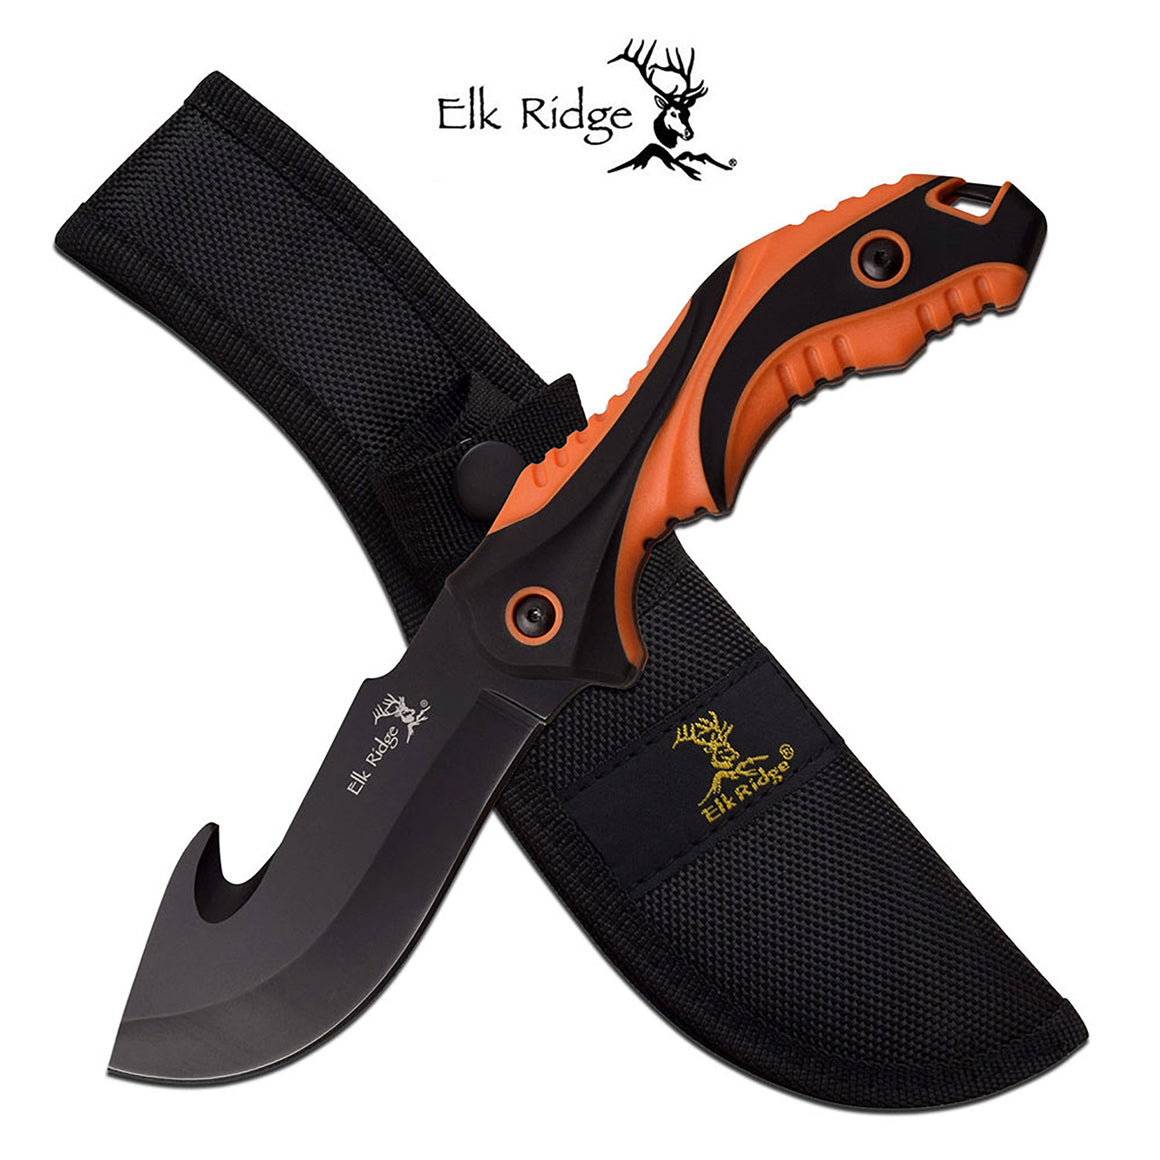 Elk Ridge ER-564HOR Fixed Blade Knife